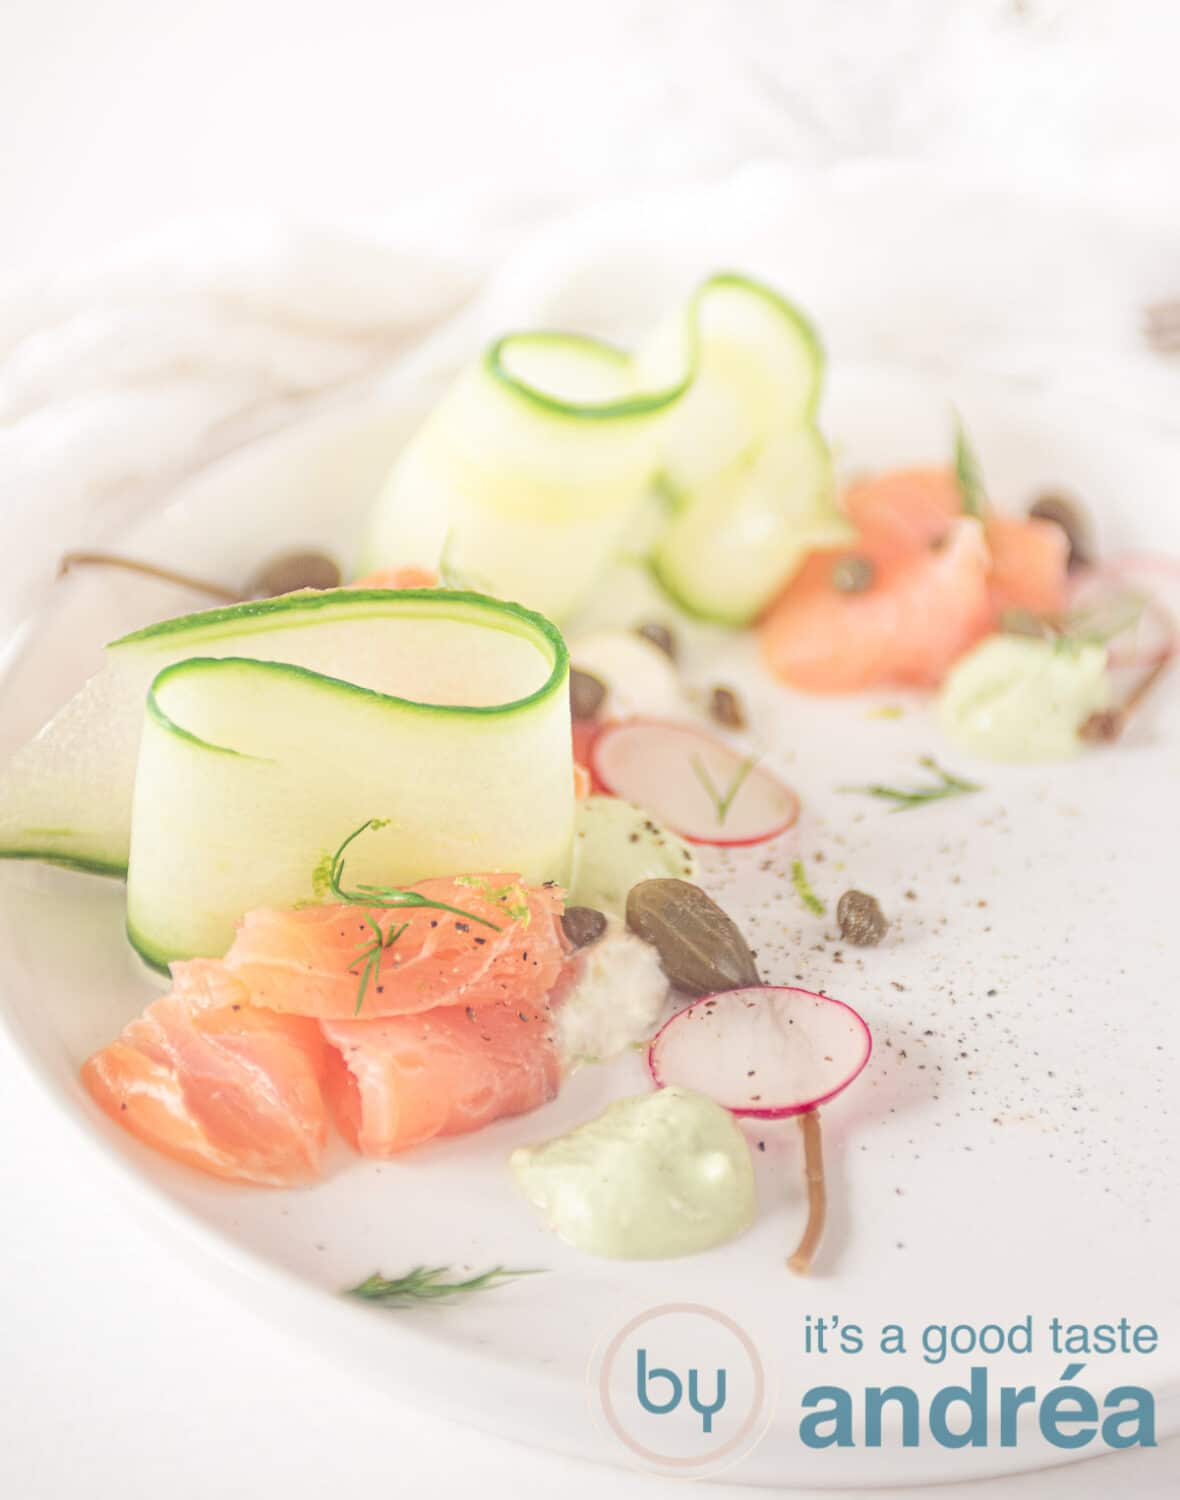 A white plate with cucumber ribbons, smoked salmon and pipings of horseradish and avocado cream